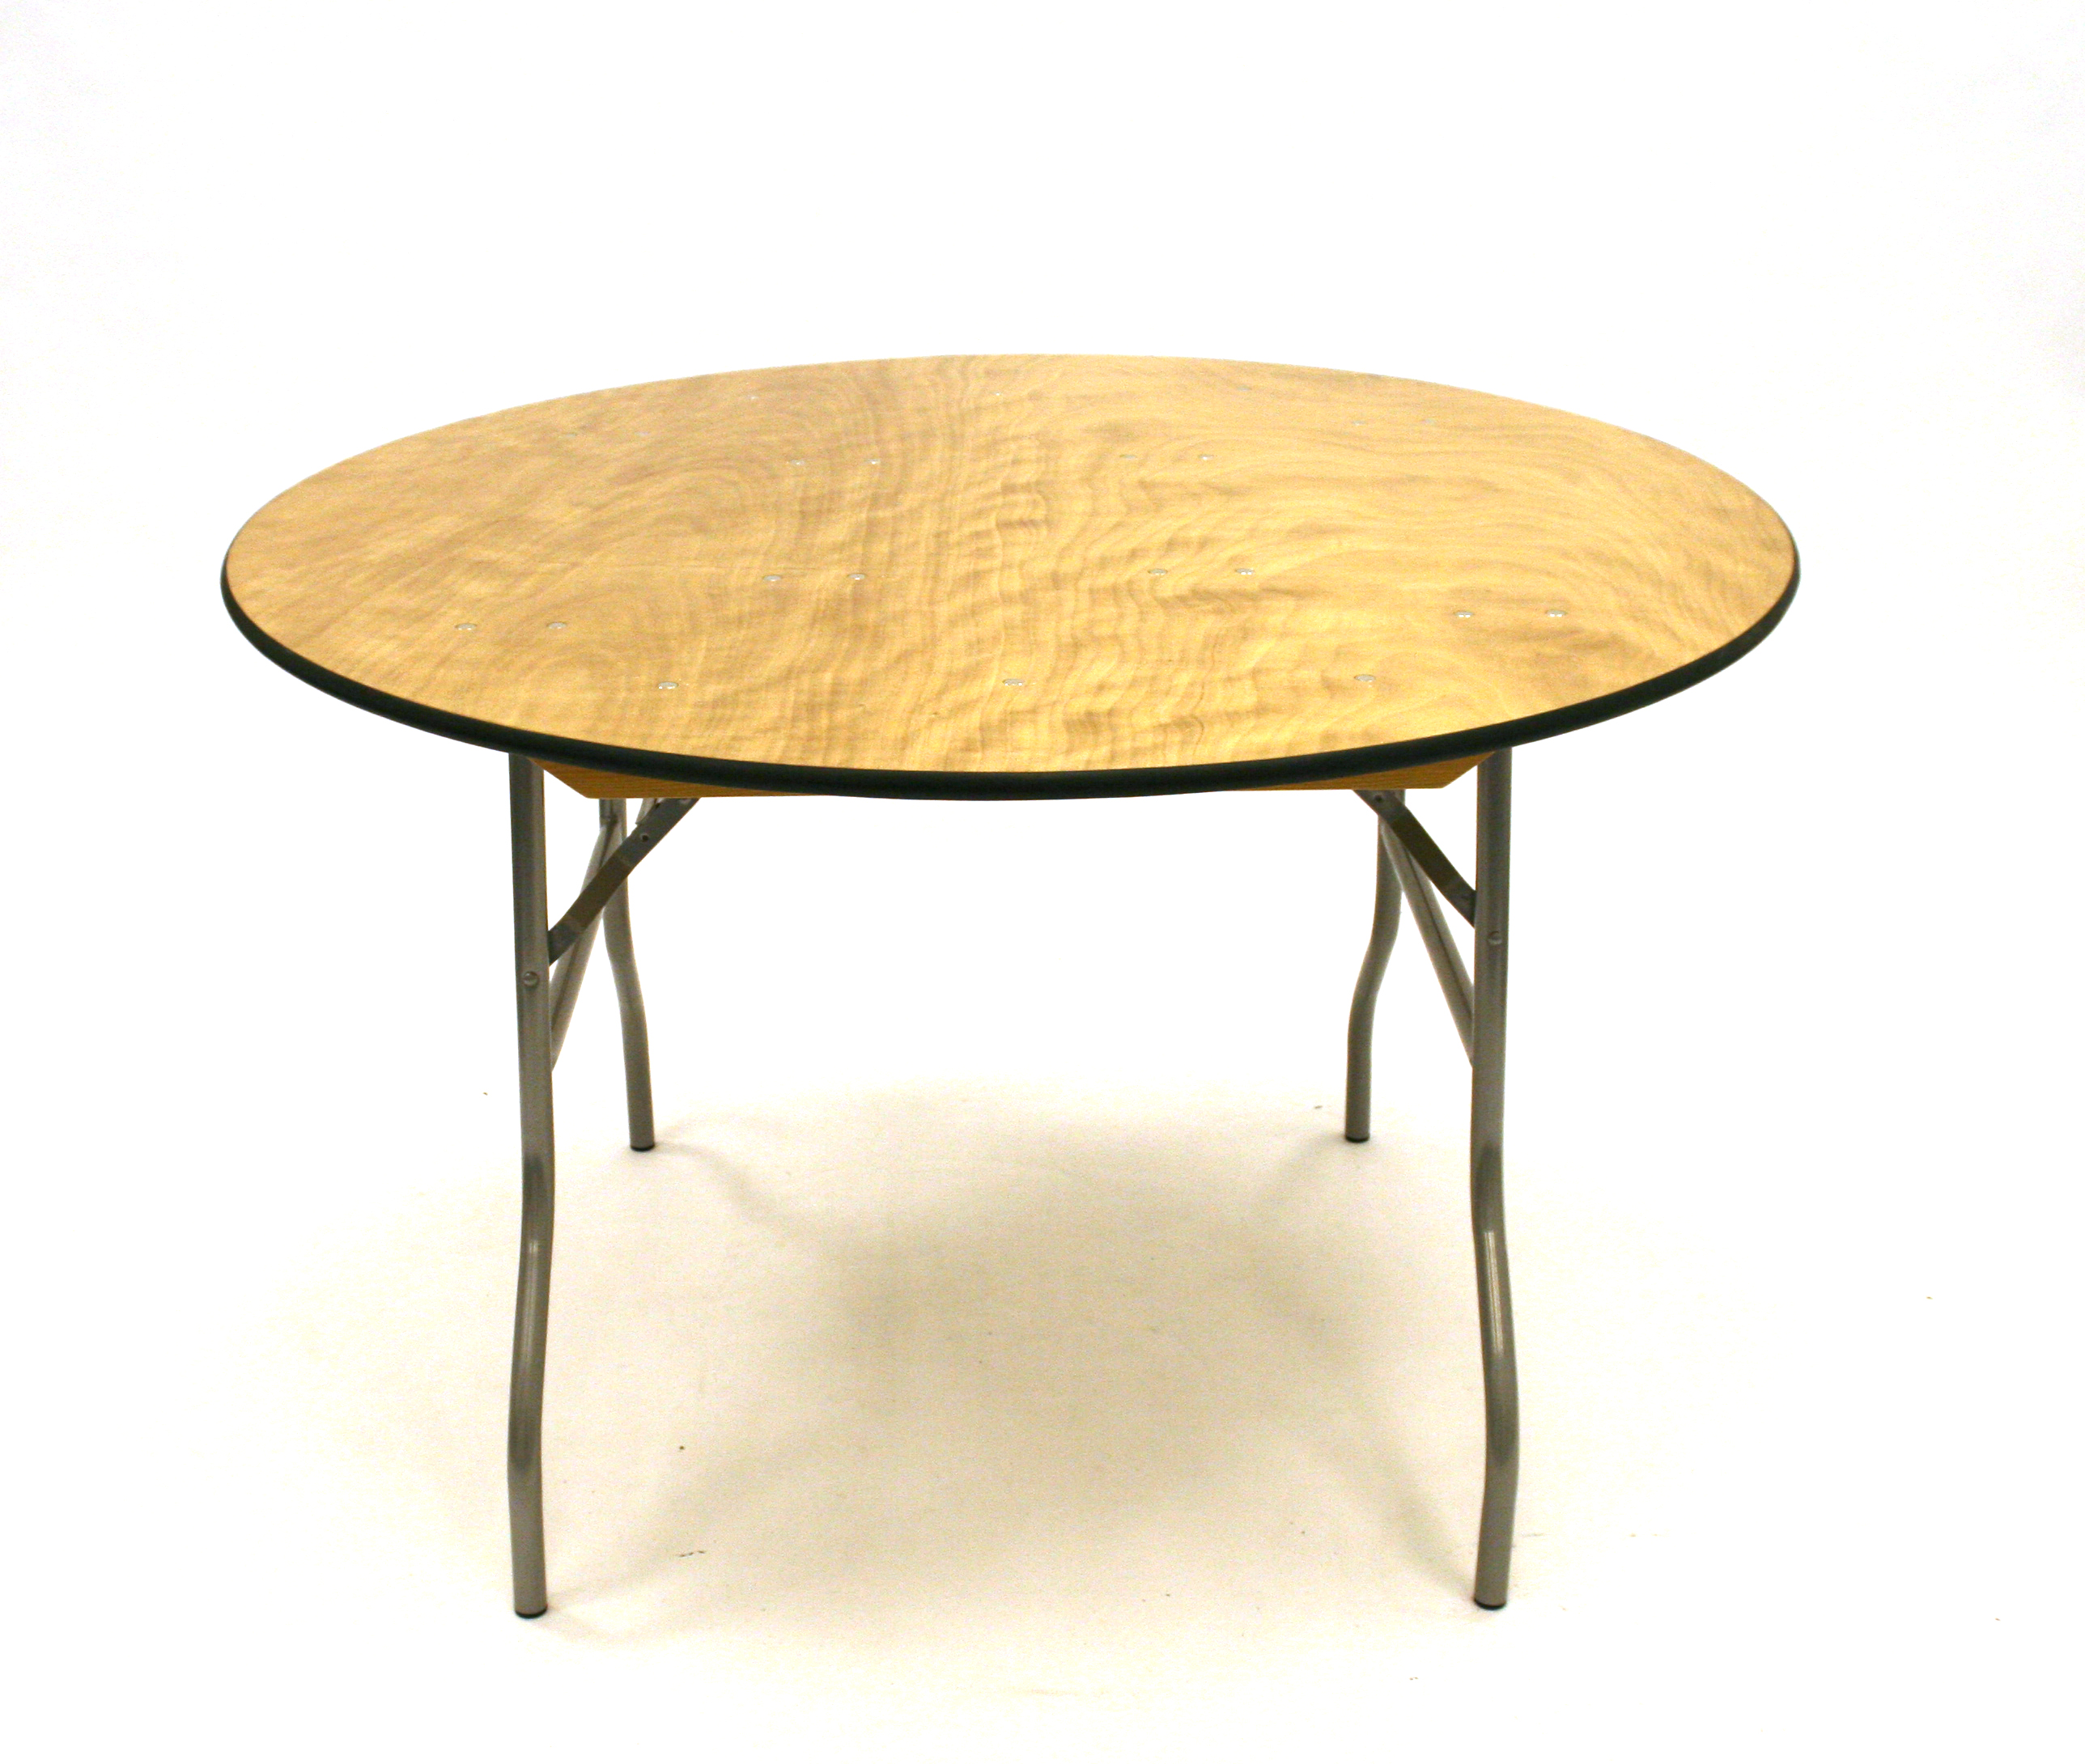 6' Diameter Table - BE Event Hire